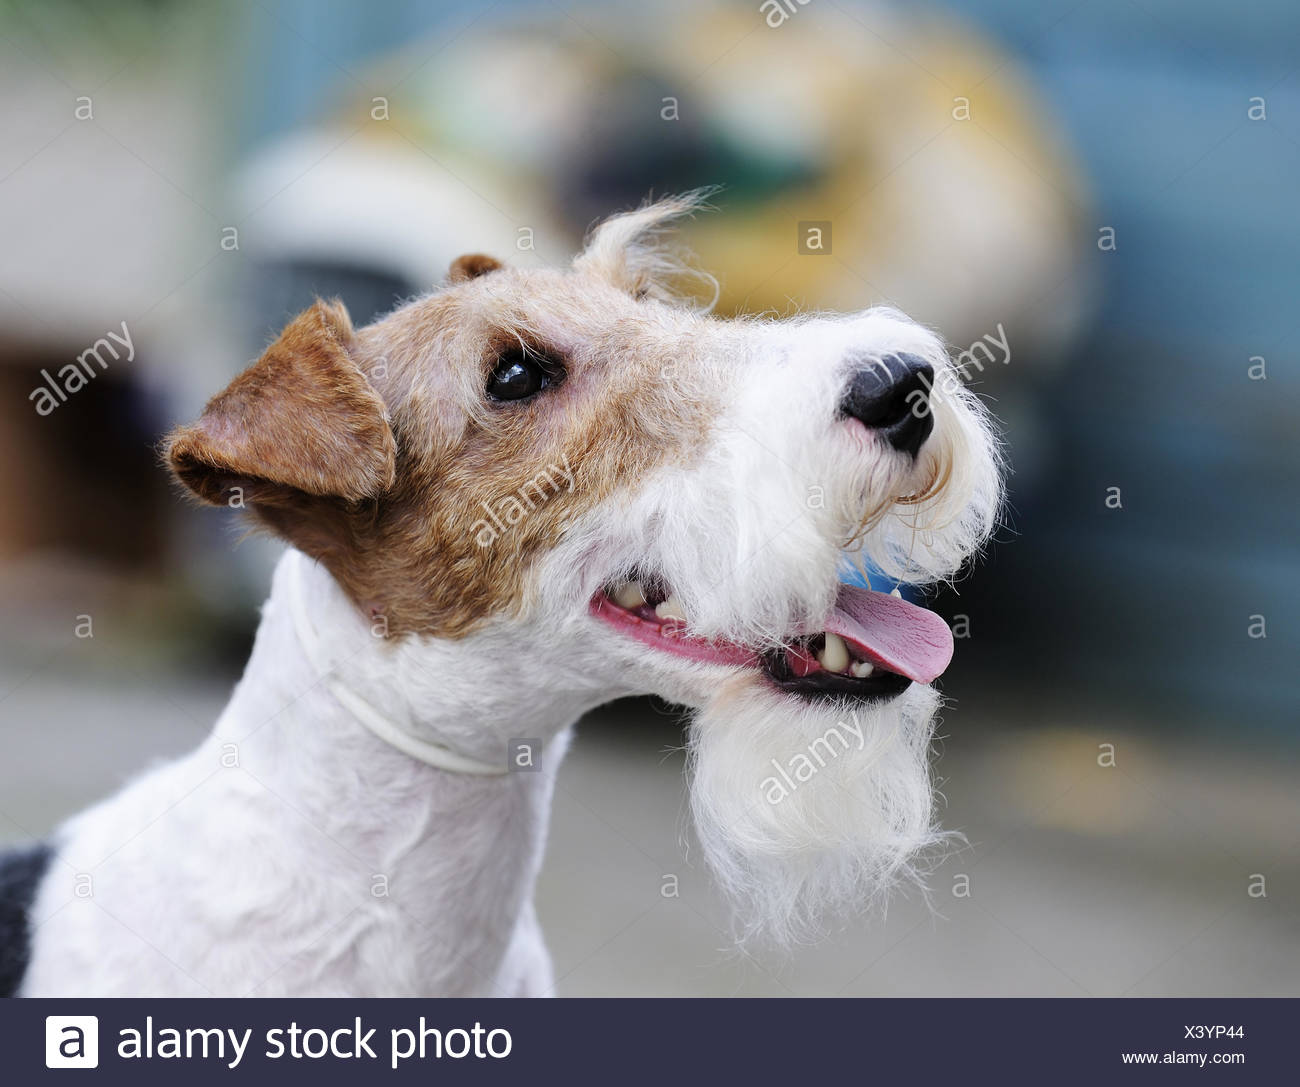 Wire Haired Fox Terrier Stock Photos & Wire Haired Fox Terrier Stock ...